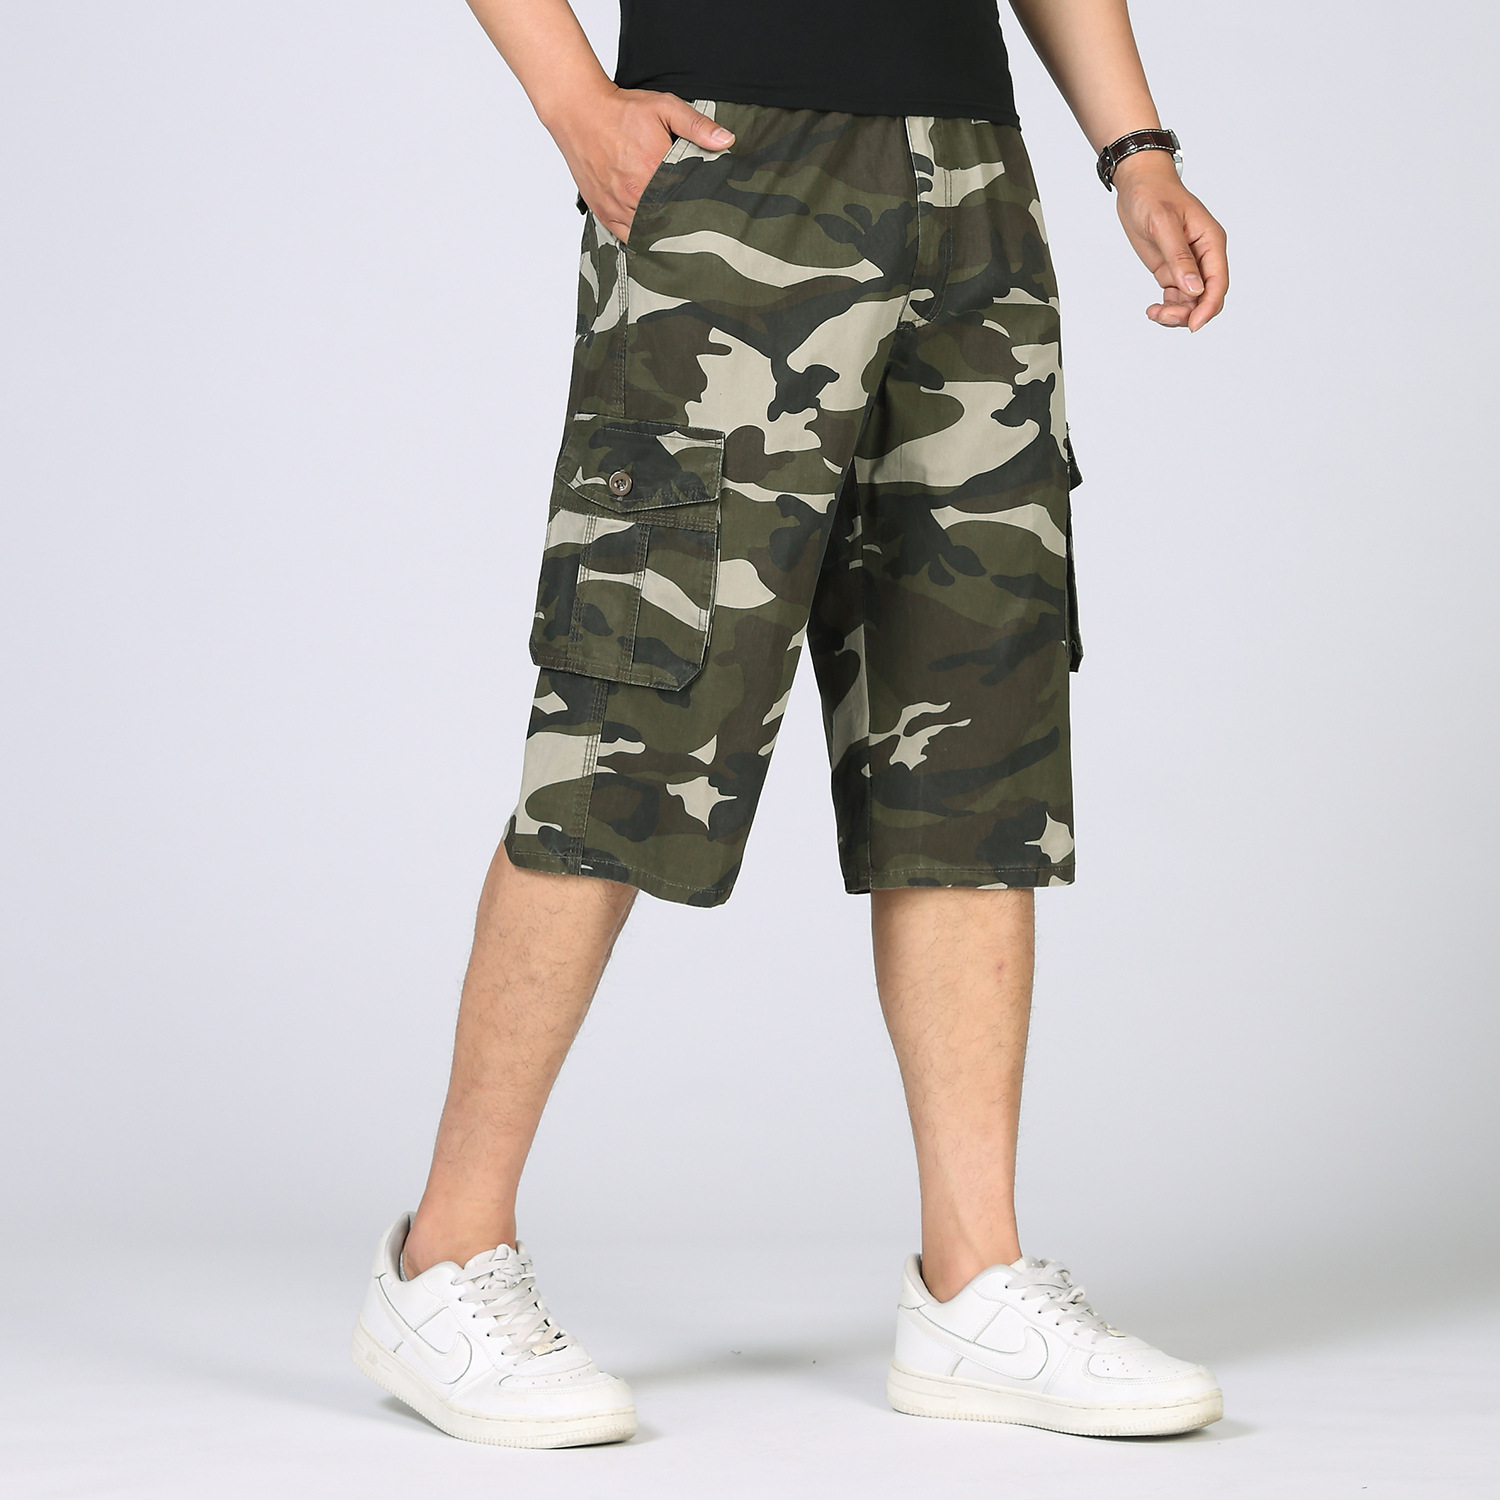 Camouflage Camo Cargo Shorts Men 2017 New Mens Casual Shorts Male Loose Work Shorts Man Suit Military Short Pants Plus Size